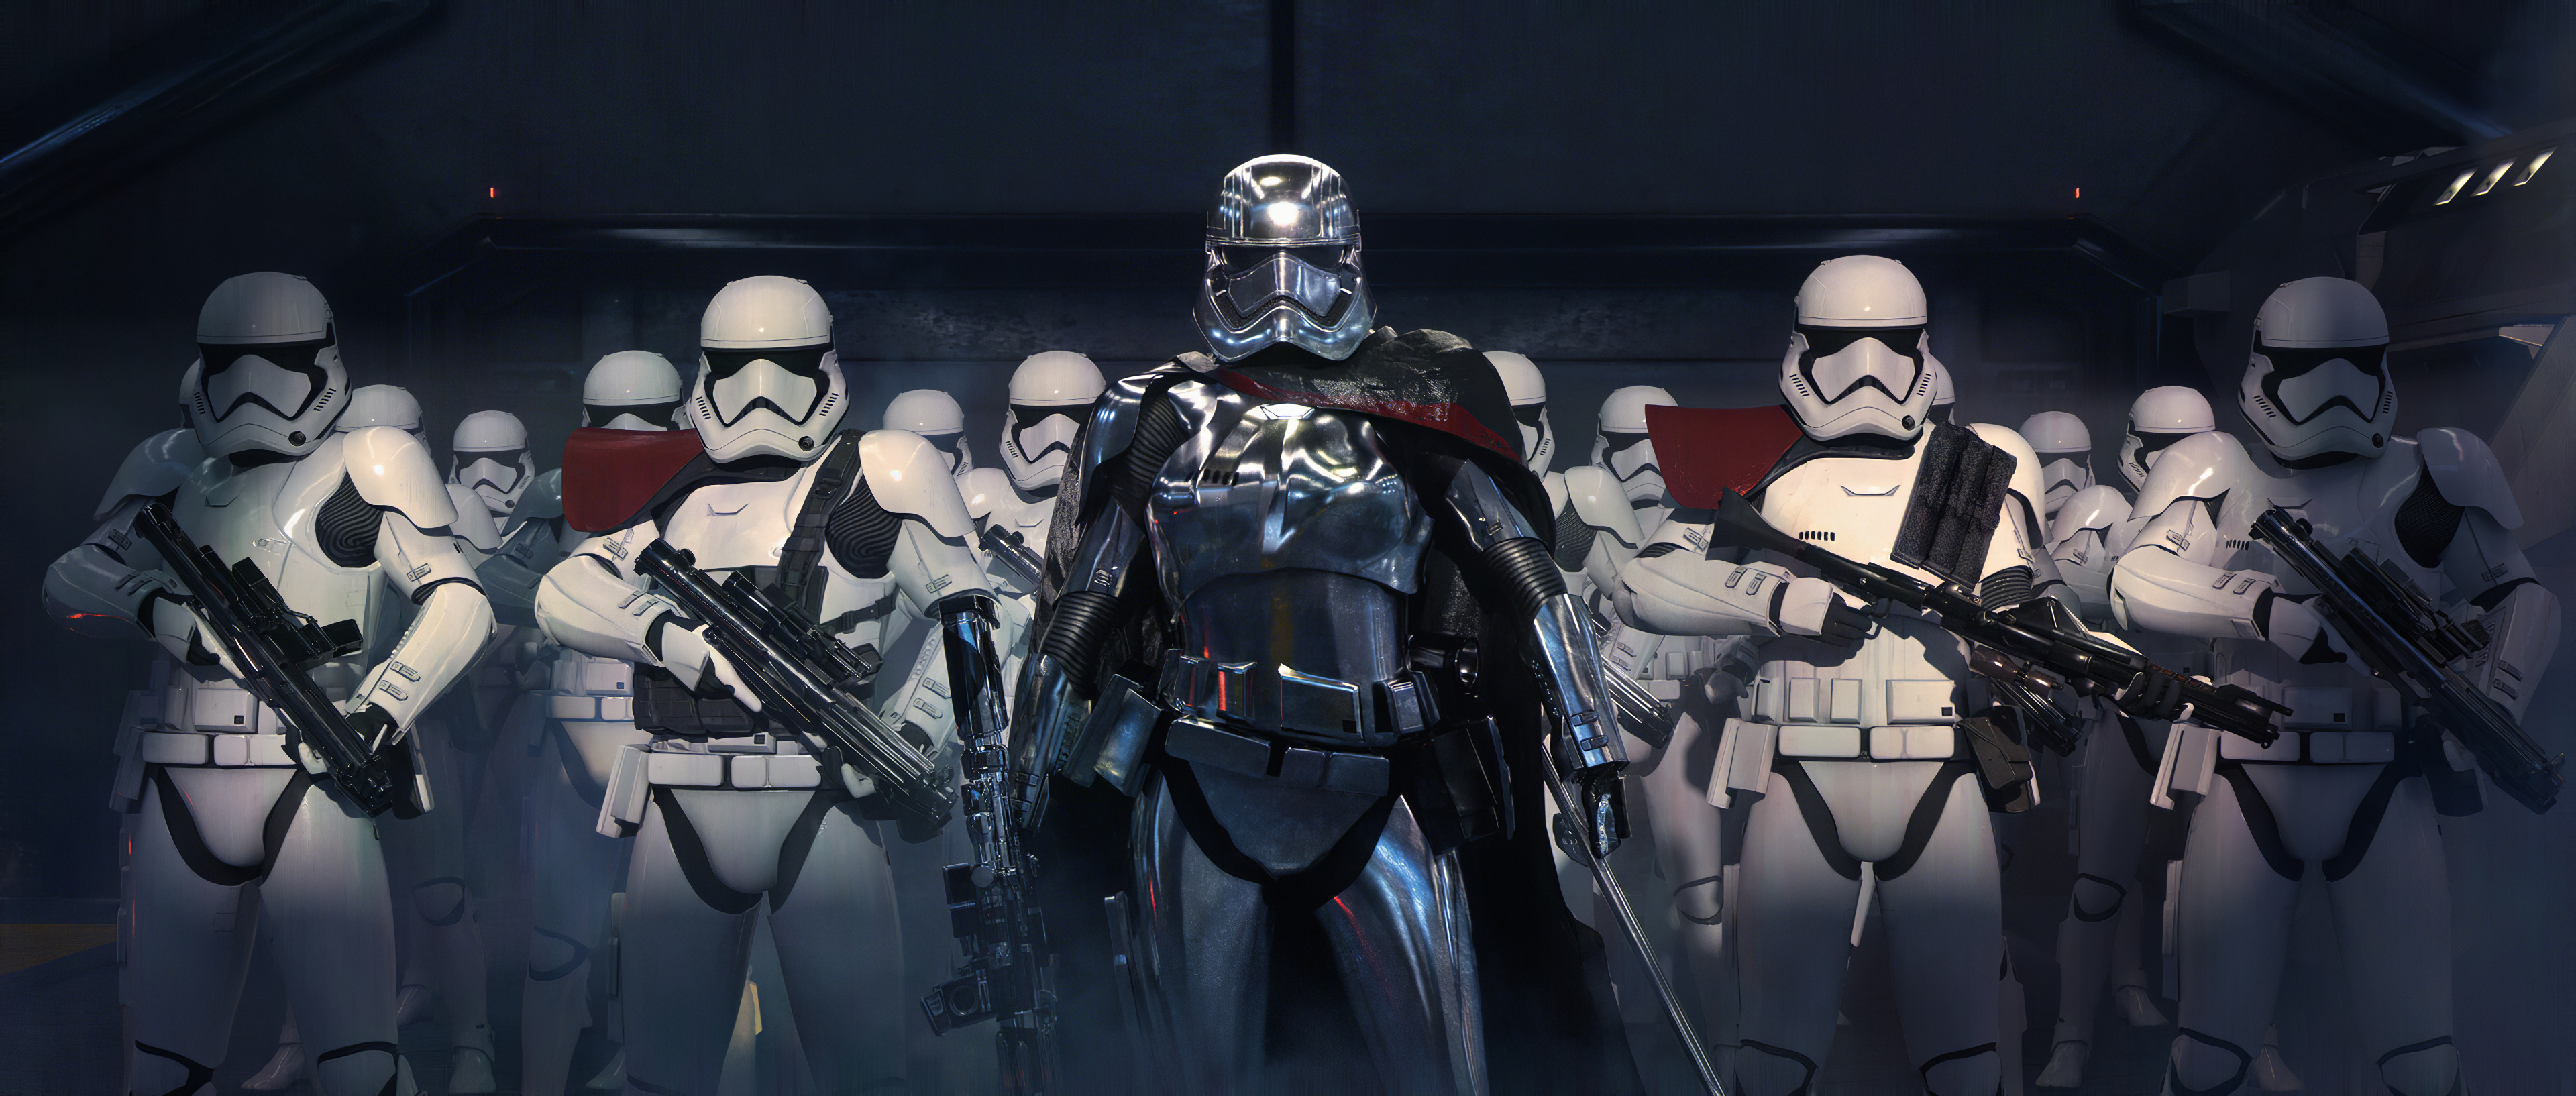 Captain Phasma 2020 Hd Movies 4k Wallpapers Images Backgrounds Photos And Pictures